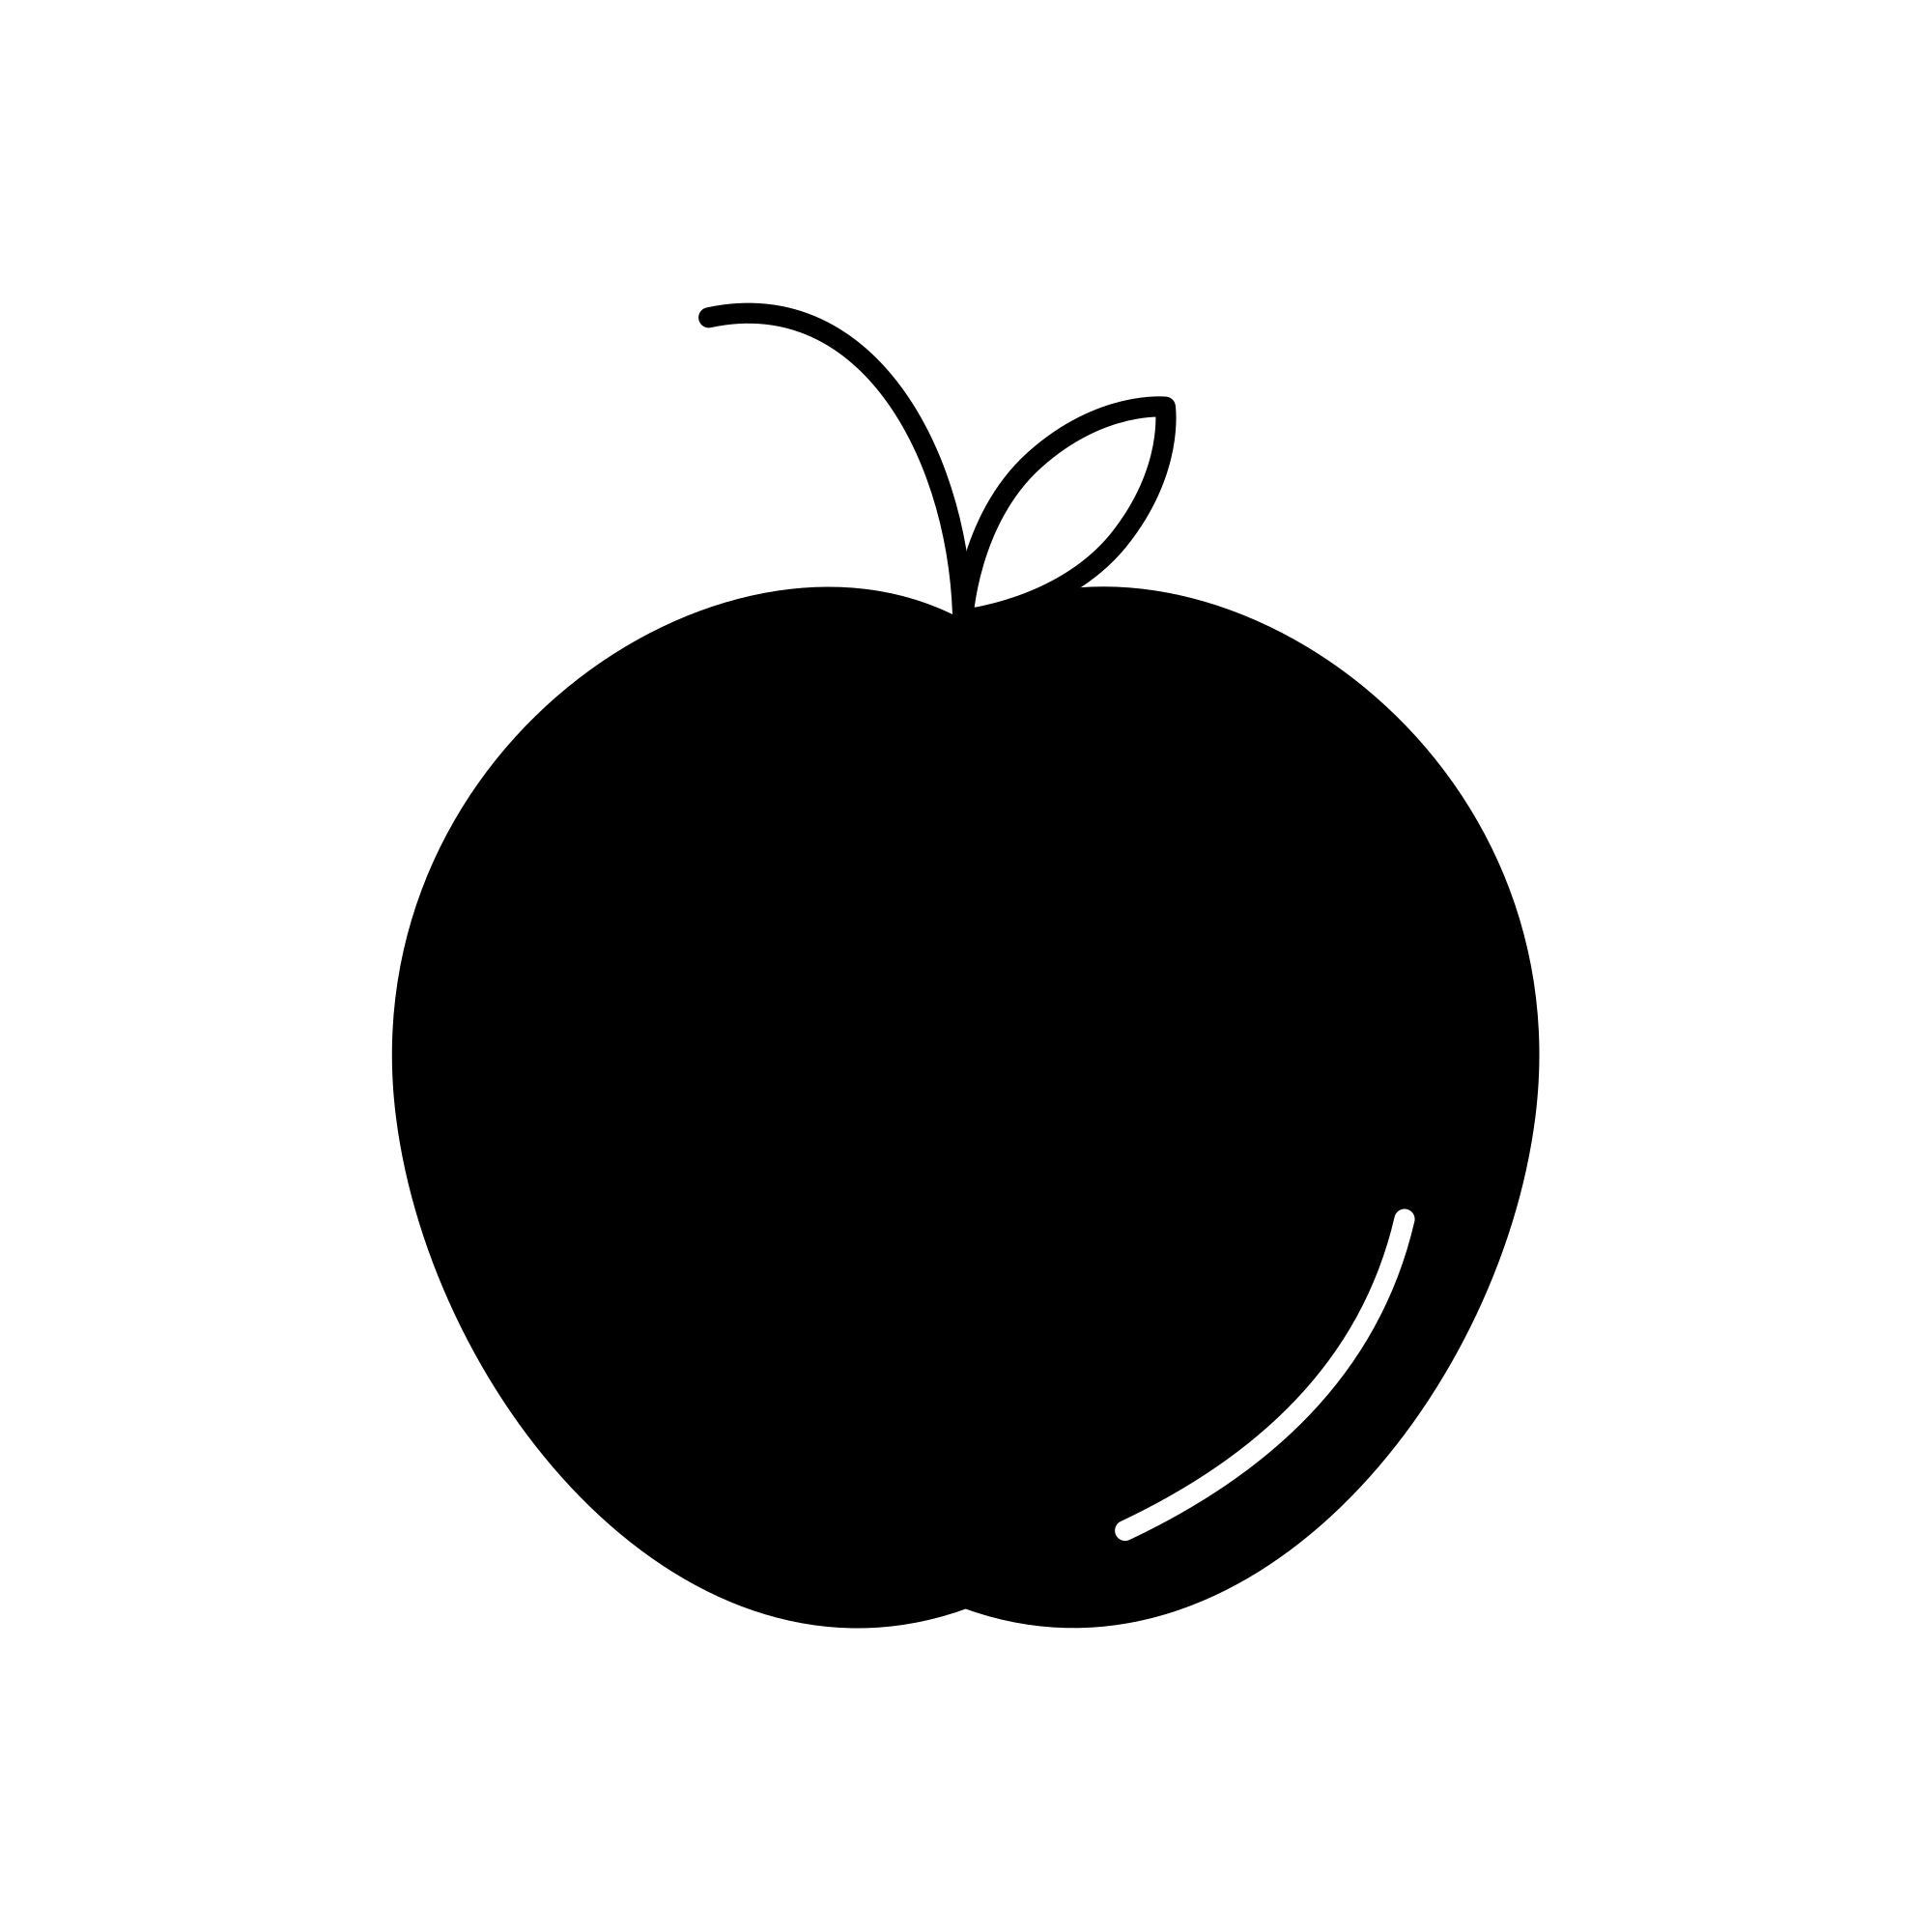 Apple clipart icon graphic free File:Apple icon black.svg - Wikimedia Commons graphic free